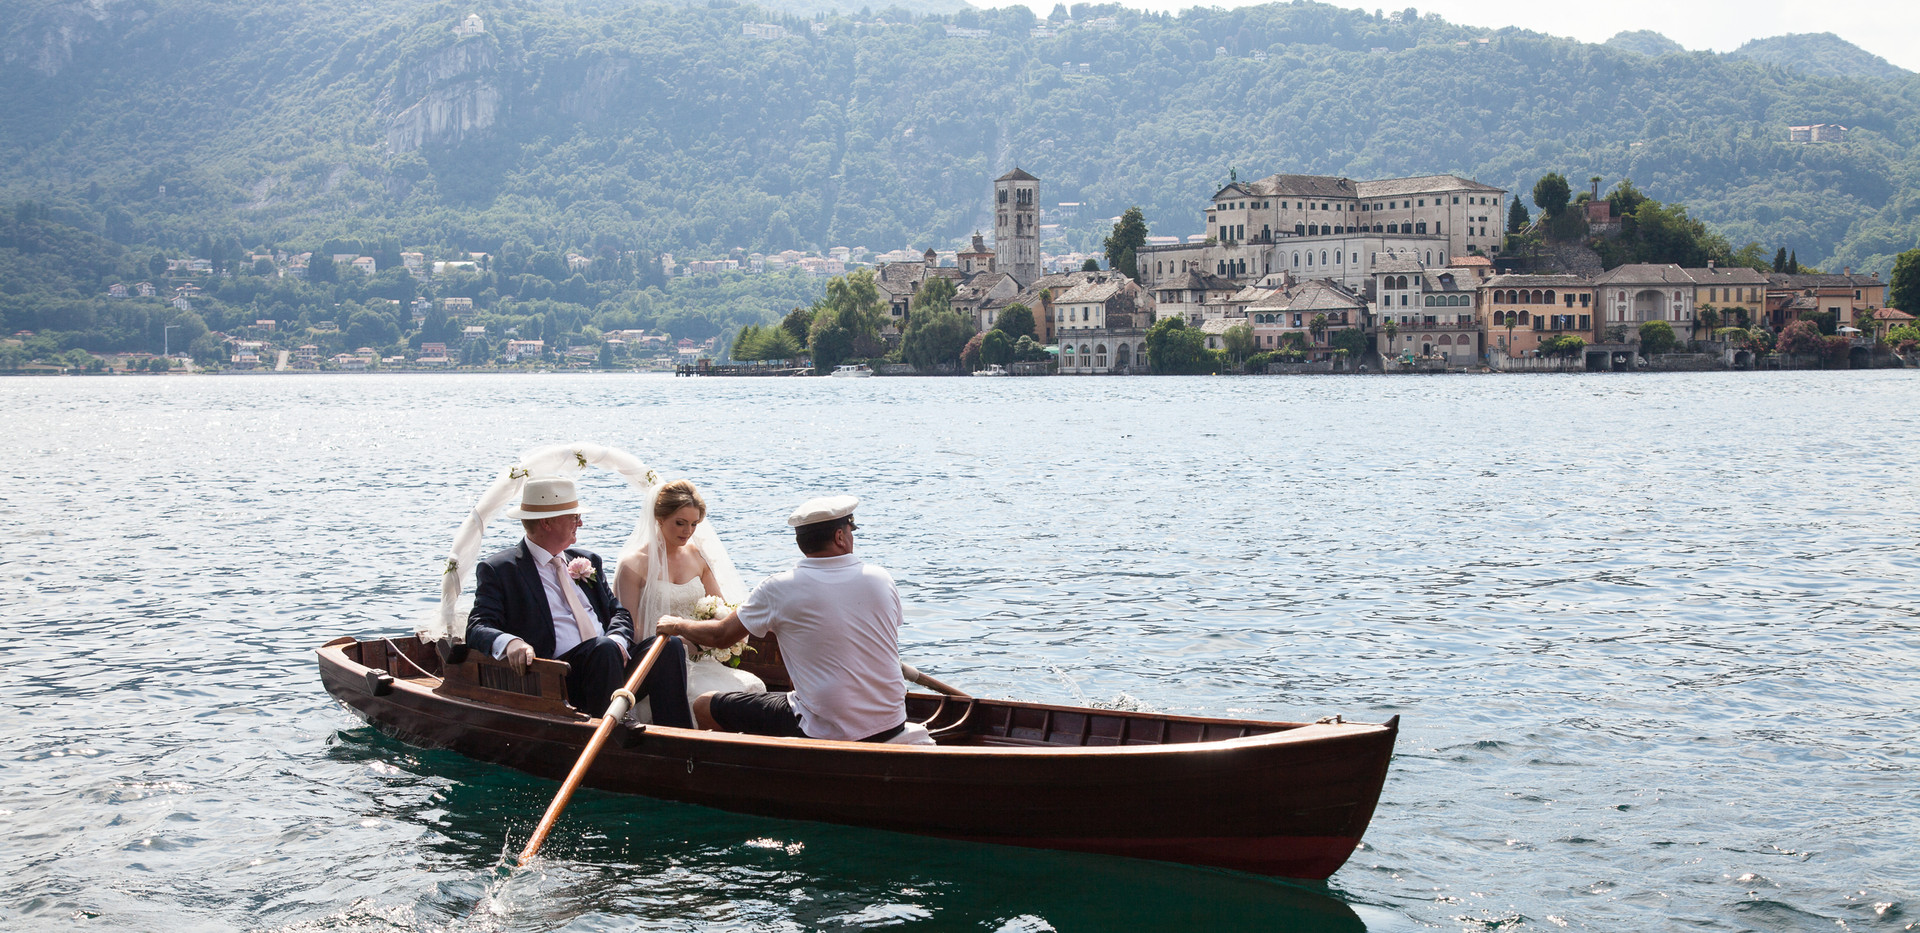 3. Rowing boat for the bride on Lake Ort